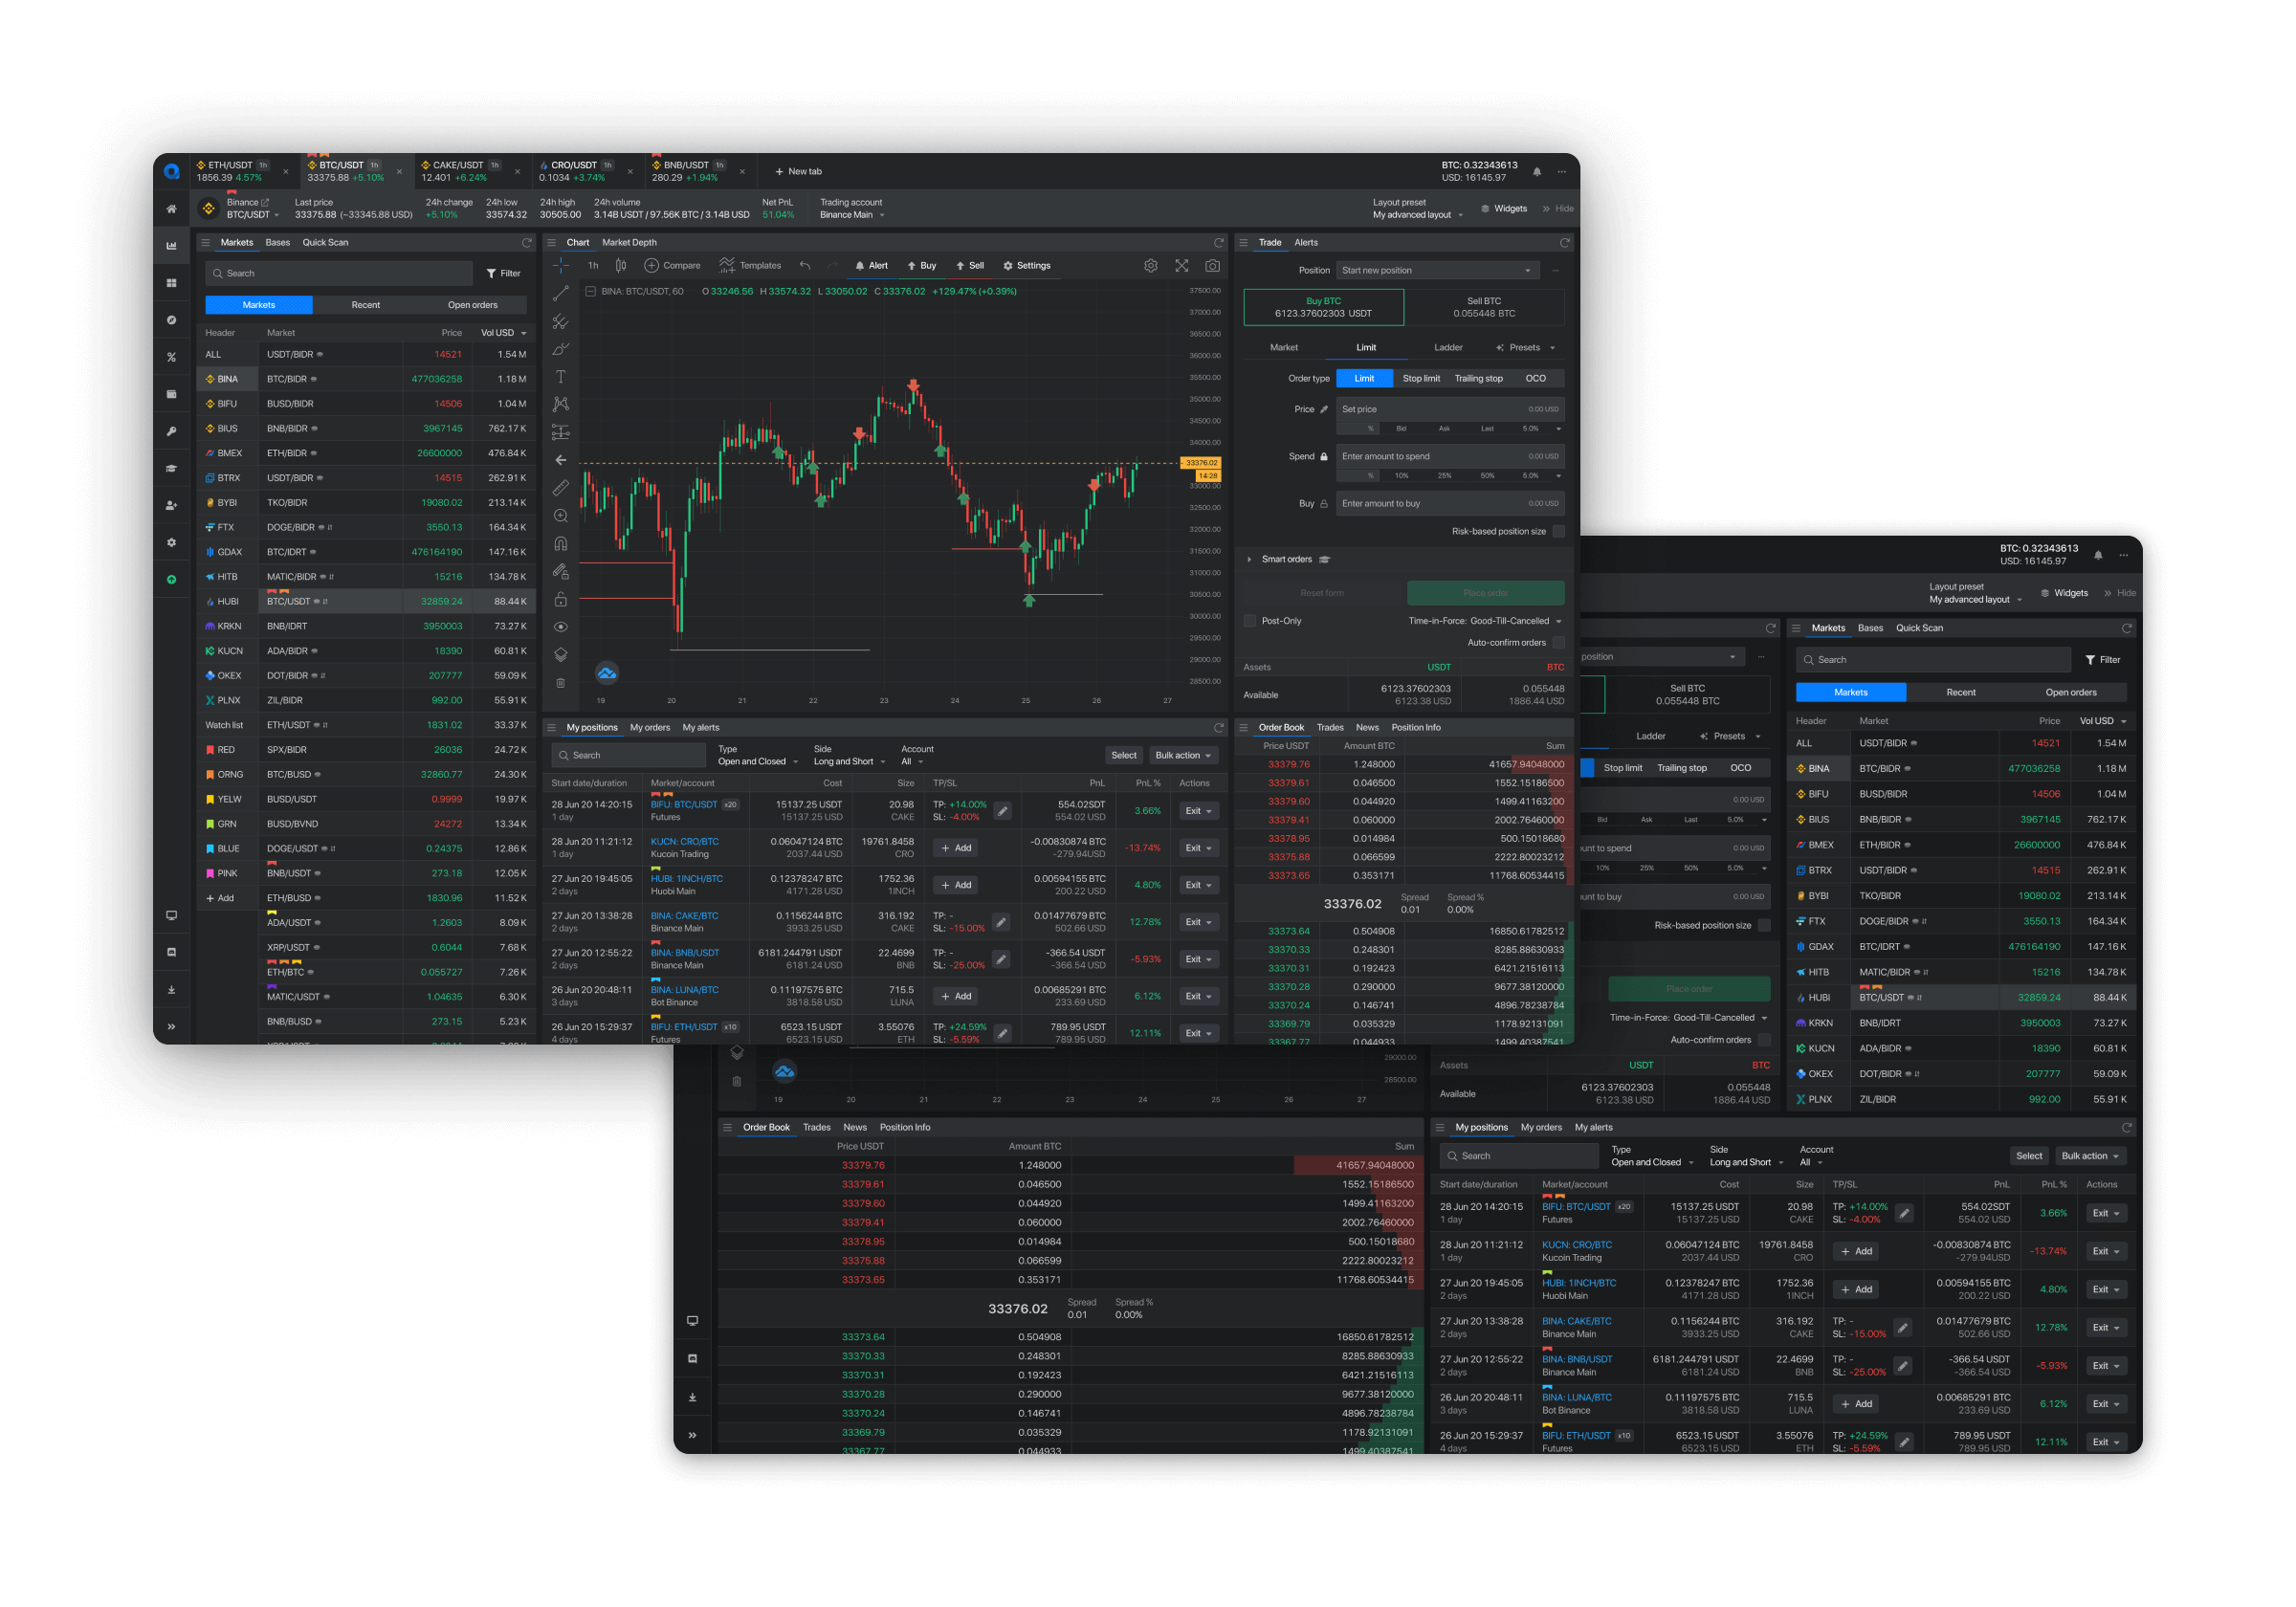 trading page layout